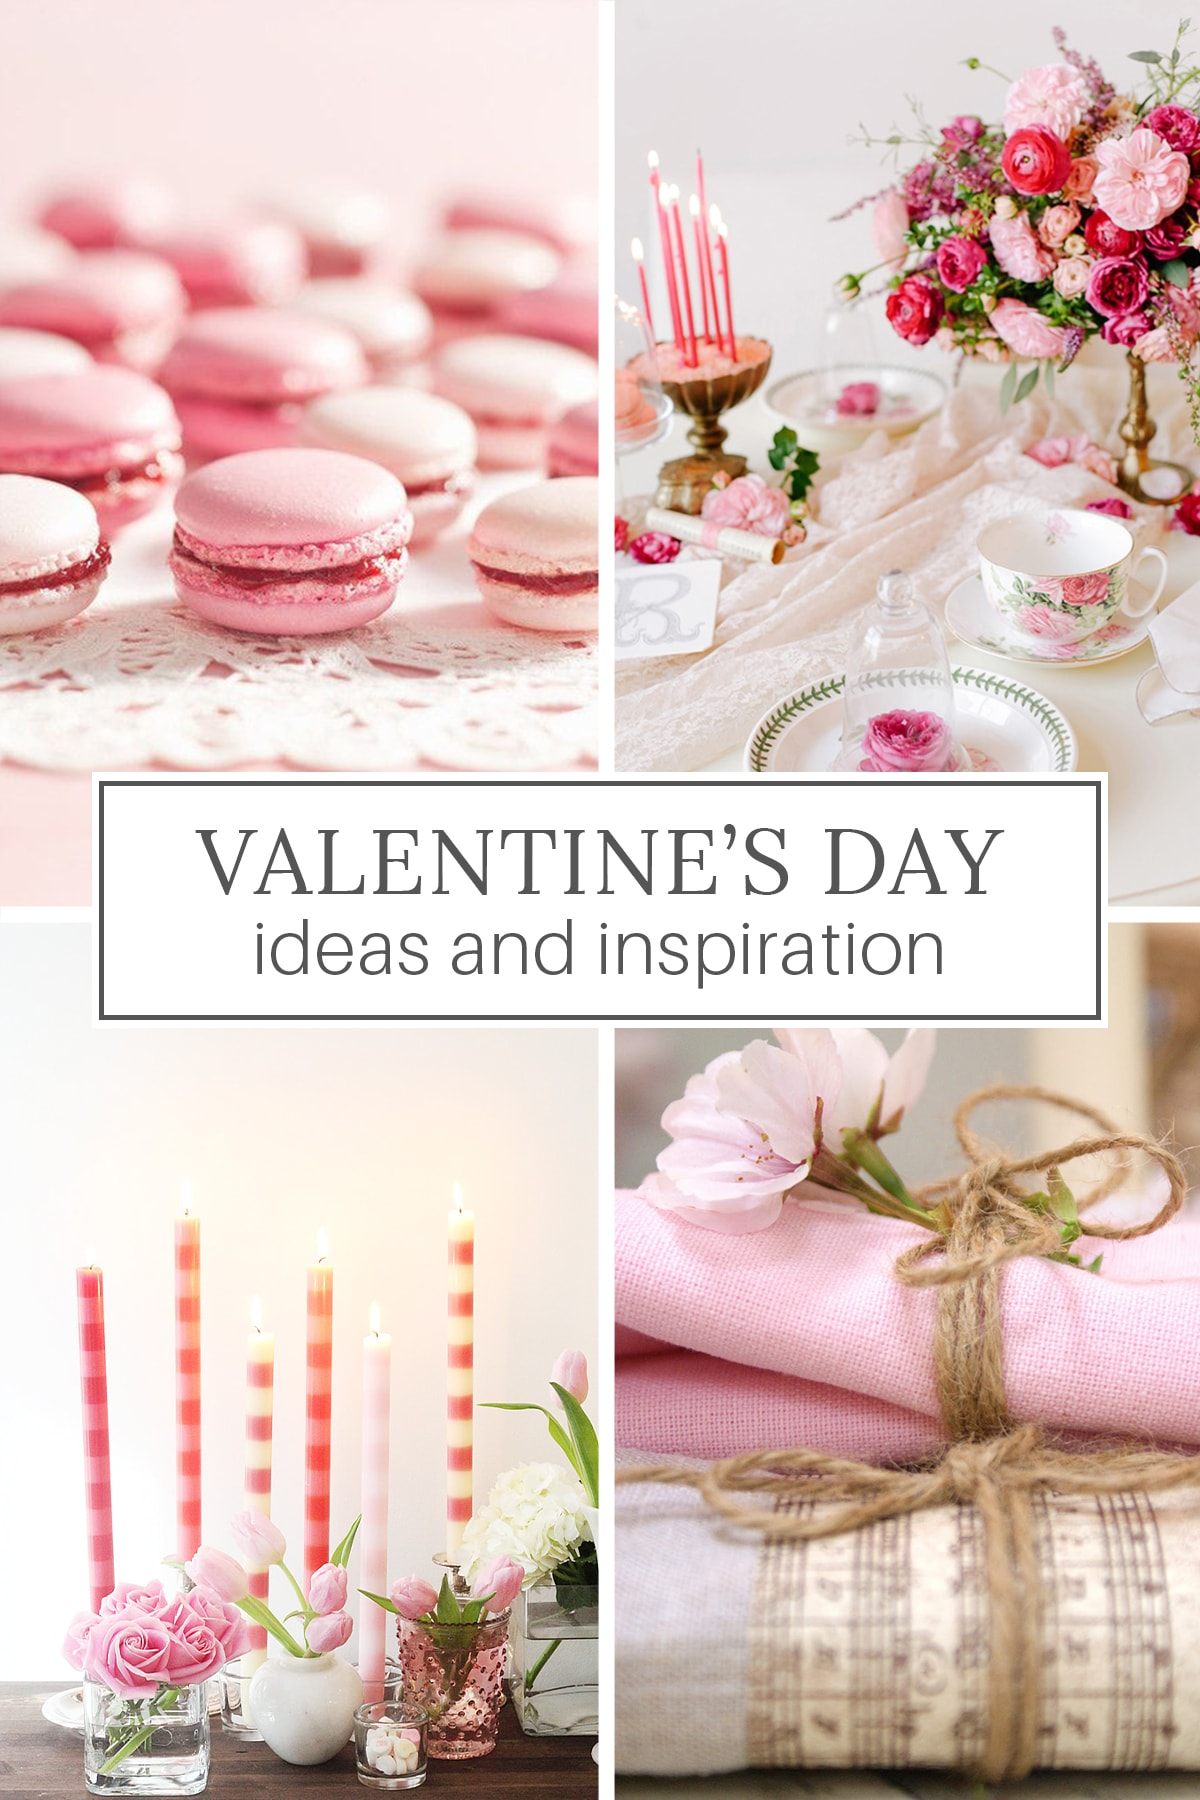 Valentines Day decor and ideas